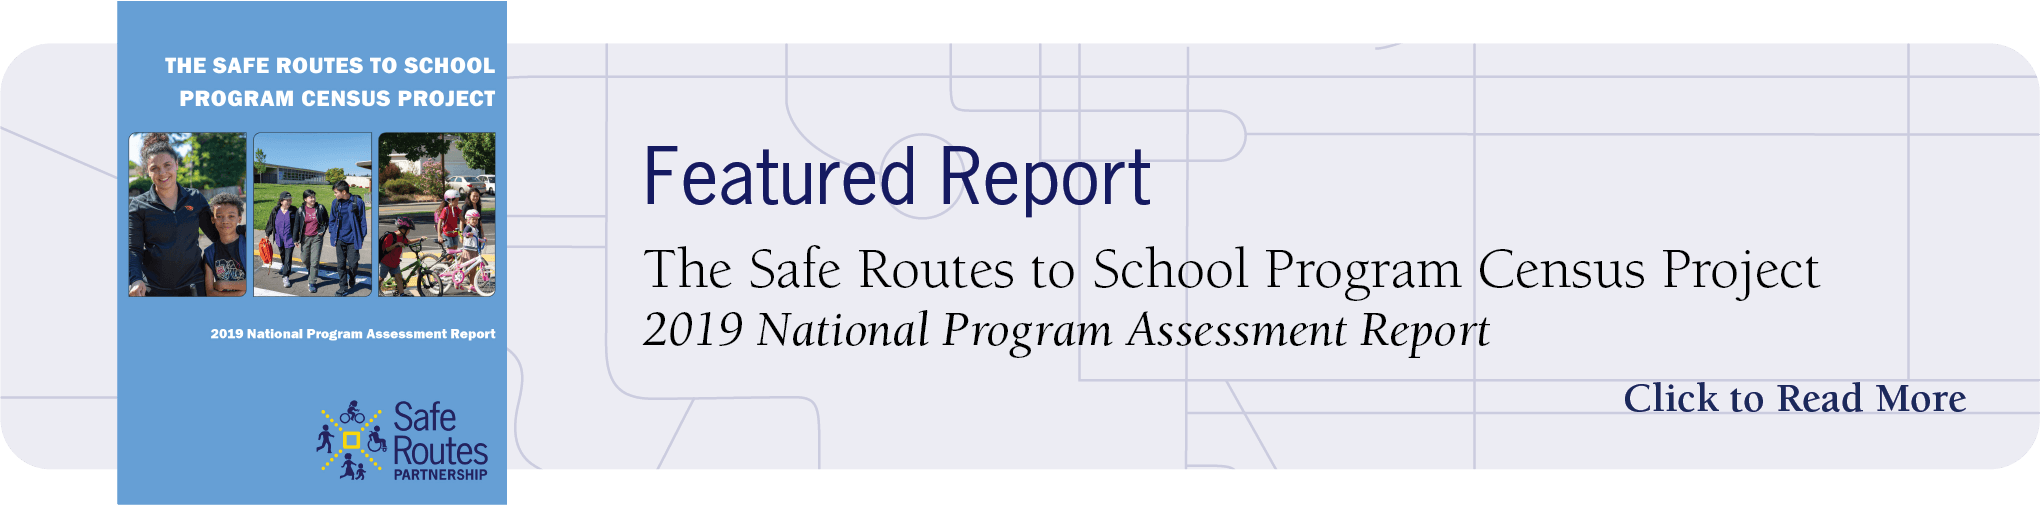 The Safe Routes to School Program Census Project